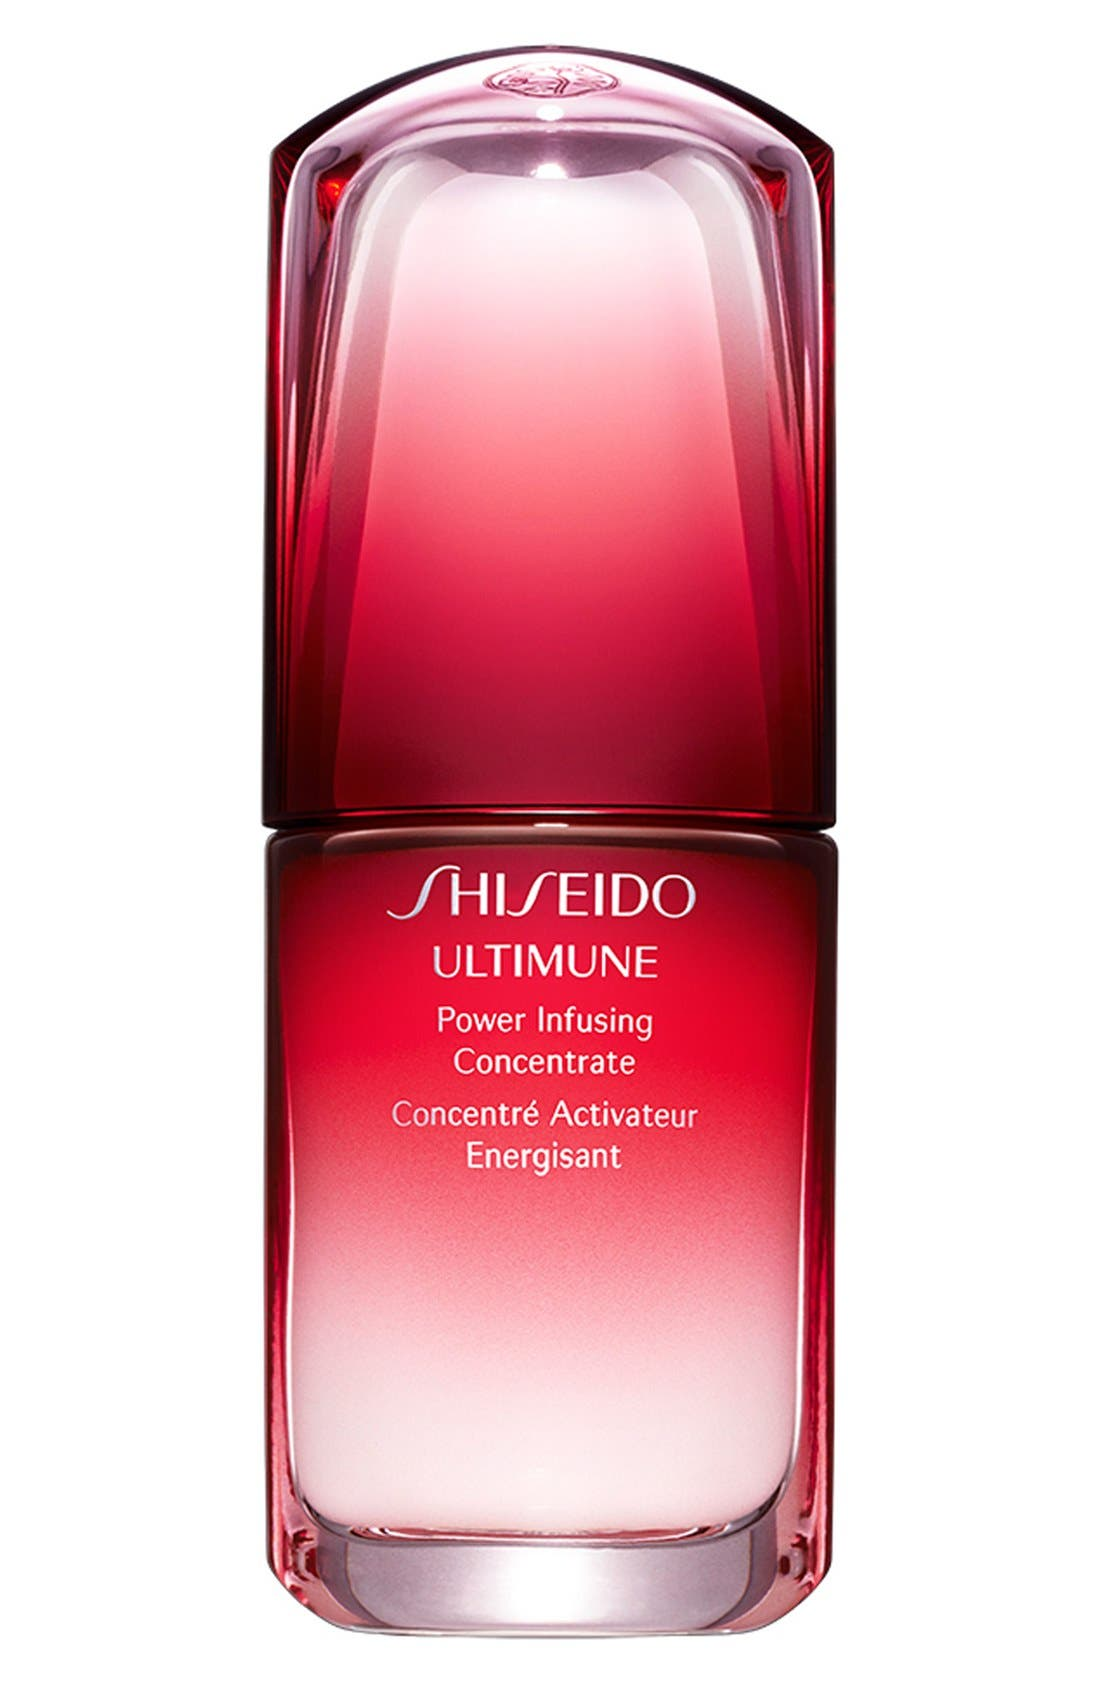 Shiseido Ultimune Power Infusing Concentrate Serum